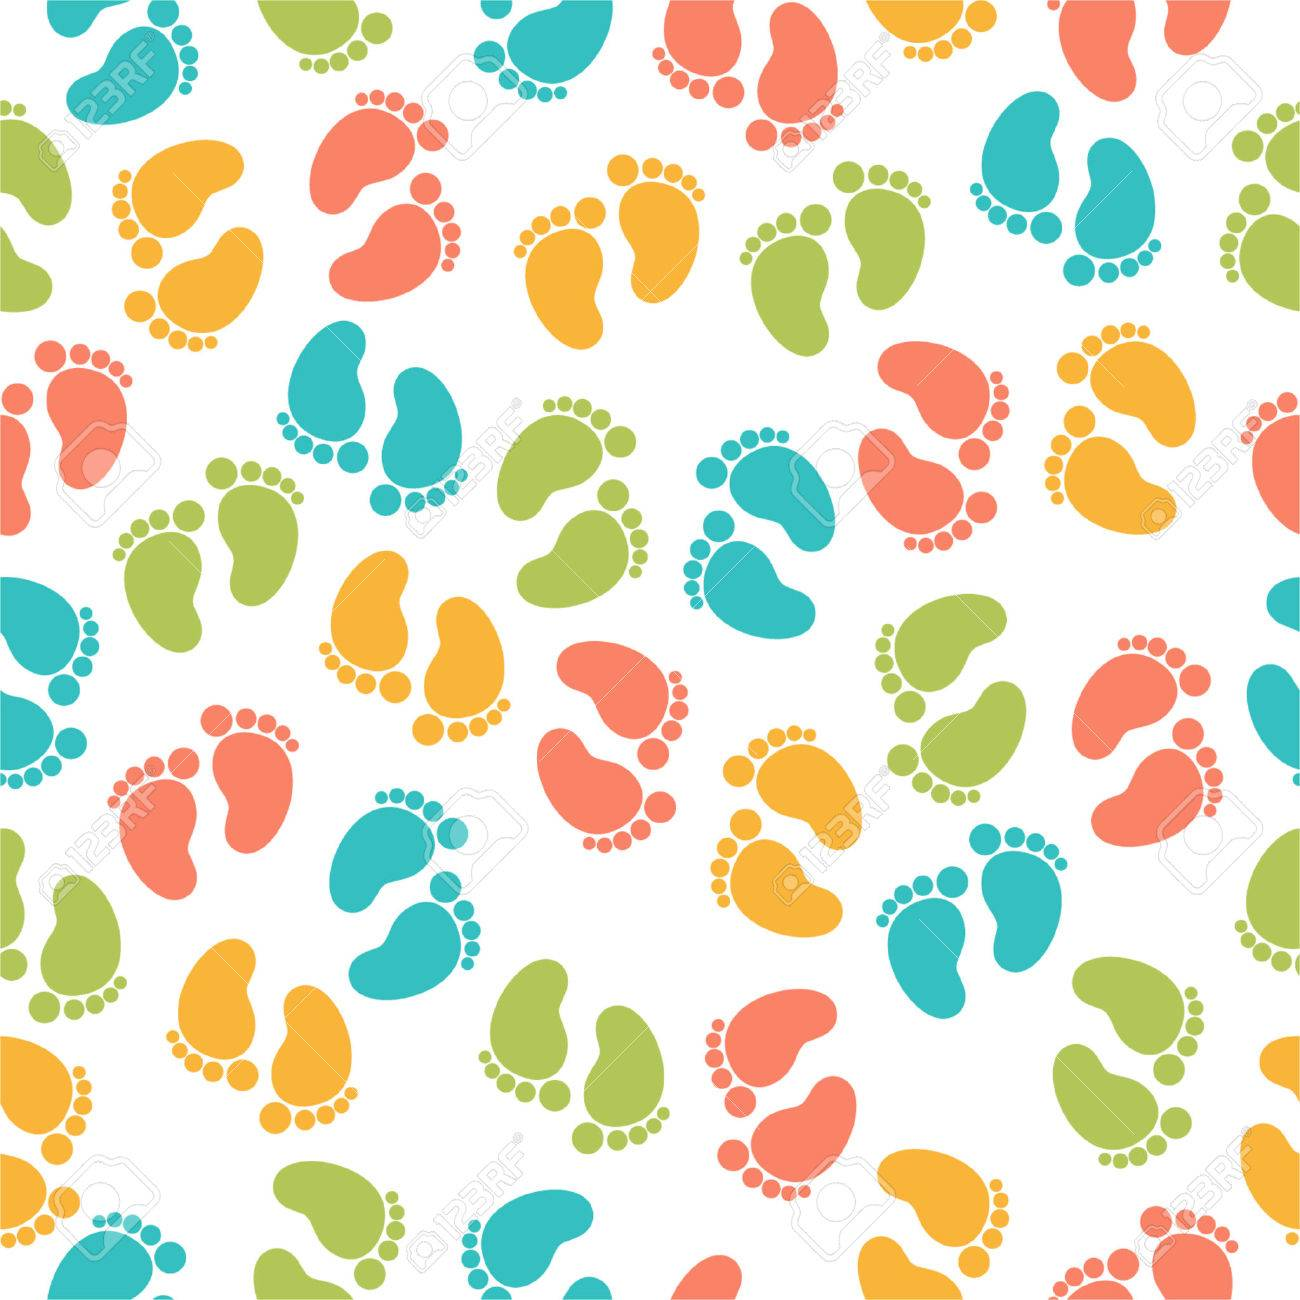 Seamless pattern with baby footprint Stock Vector - 24754204